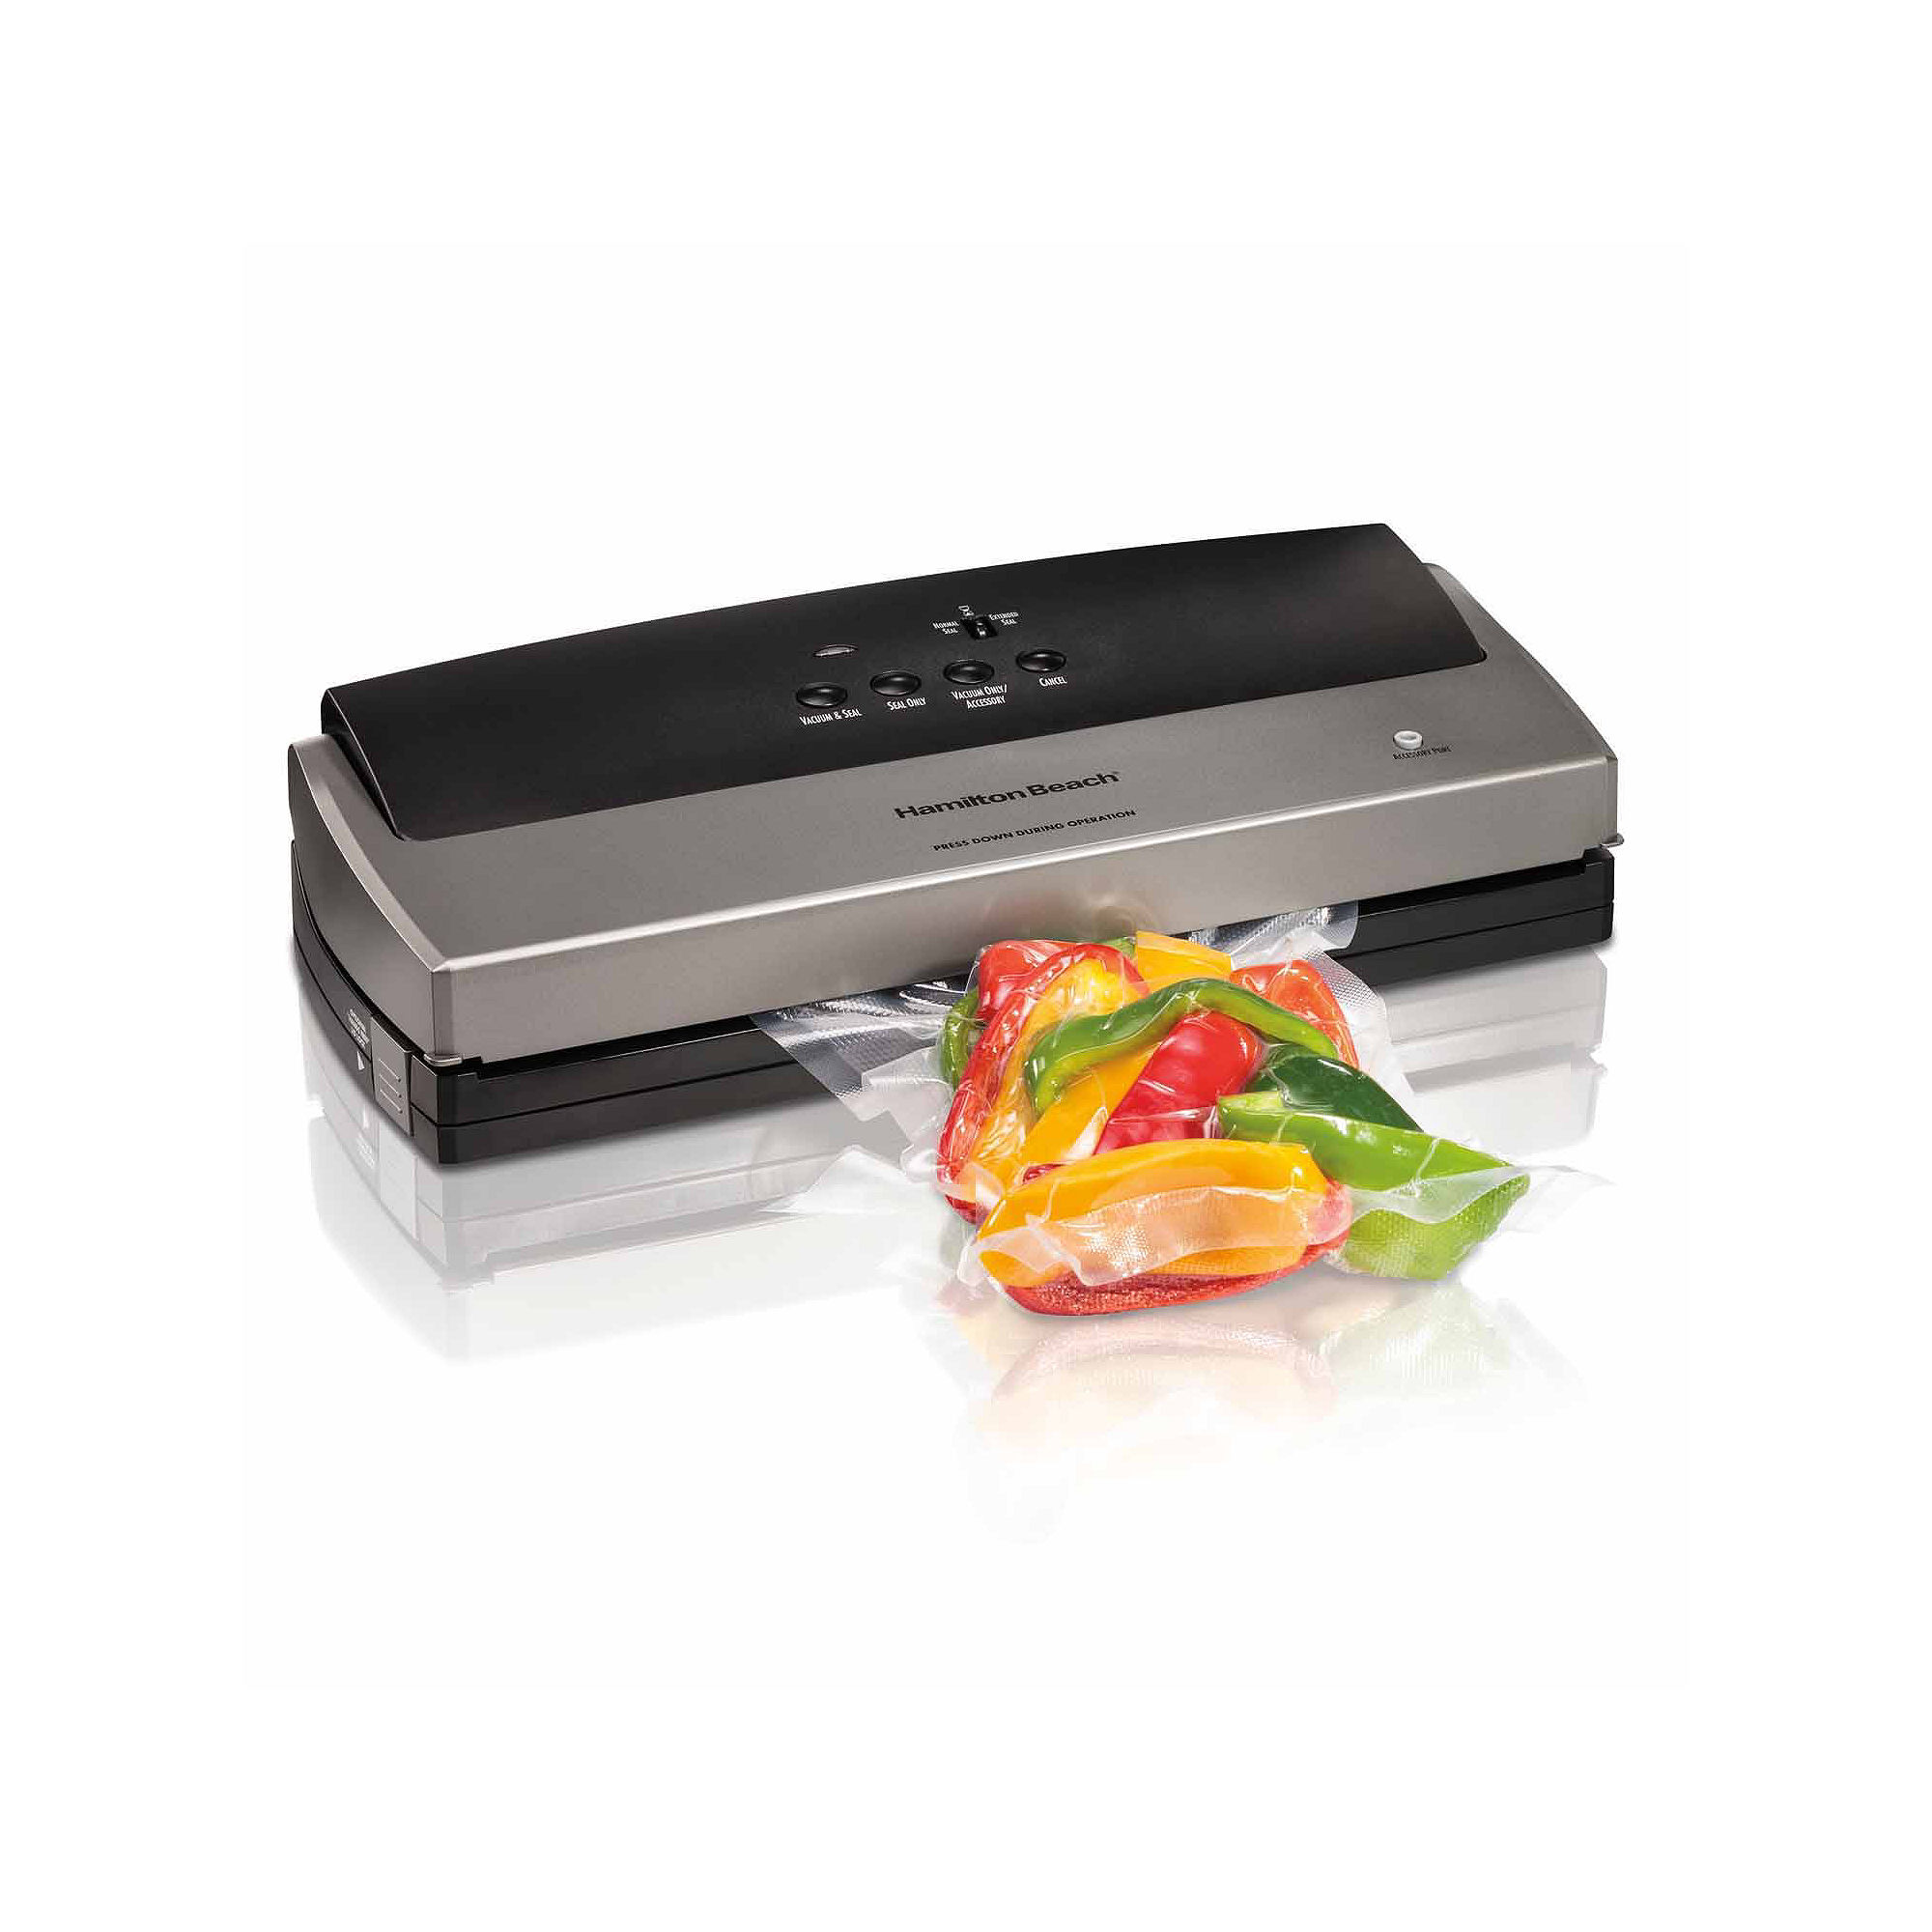 "Hamilton Beach Nutrifresh"" Vacuum Sealer"